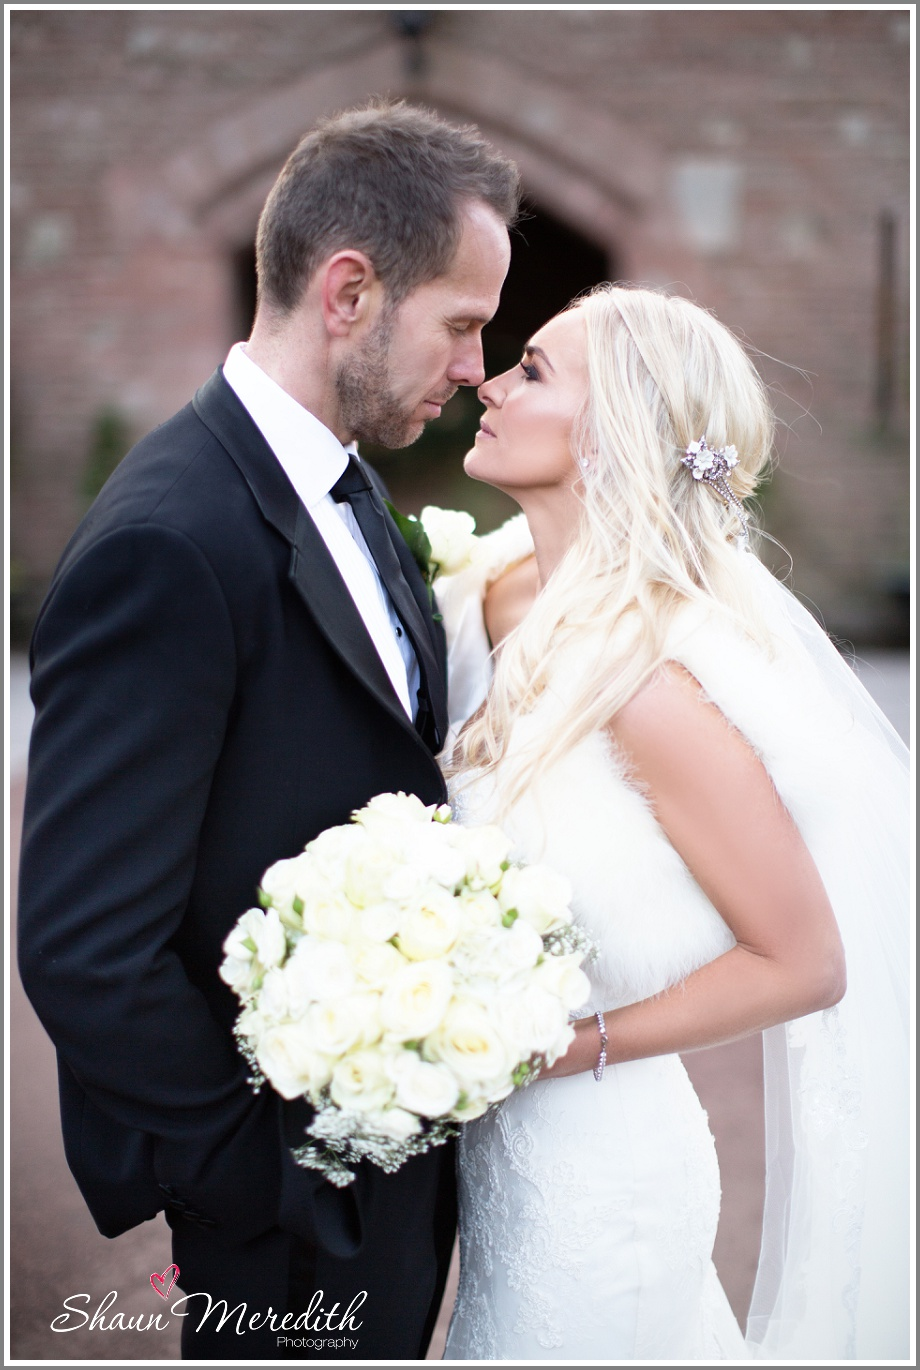 Julie and Marcus at the entrance of Peckforton Castle